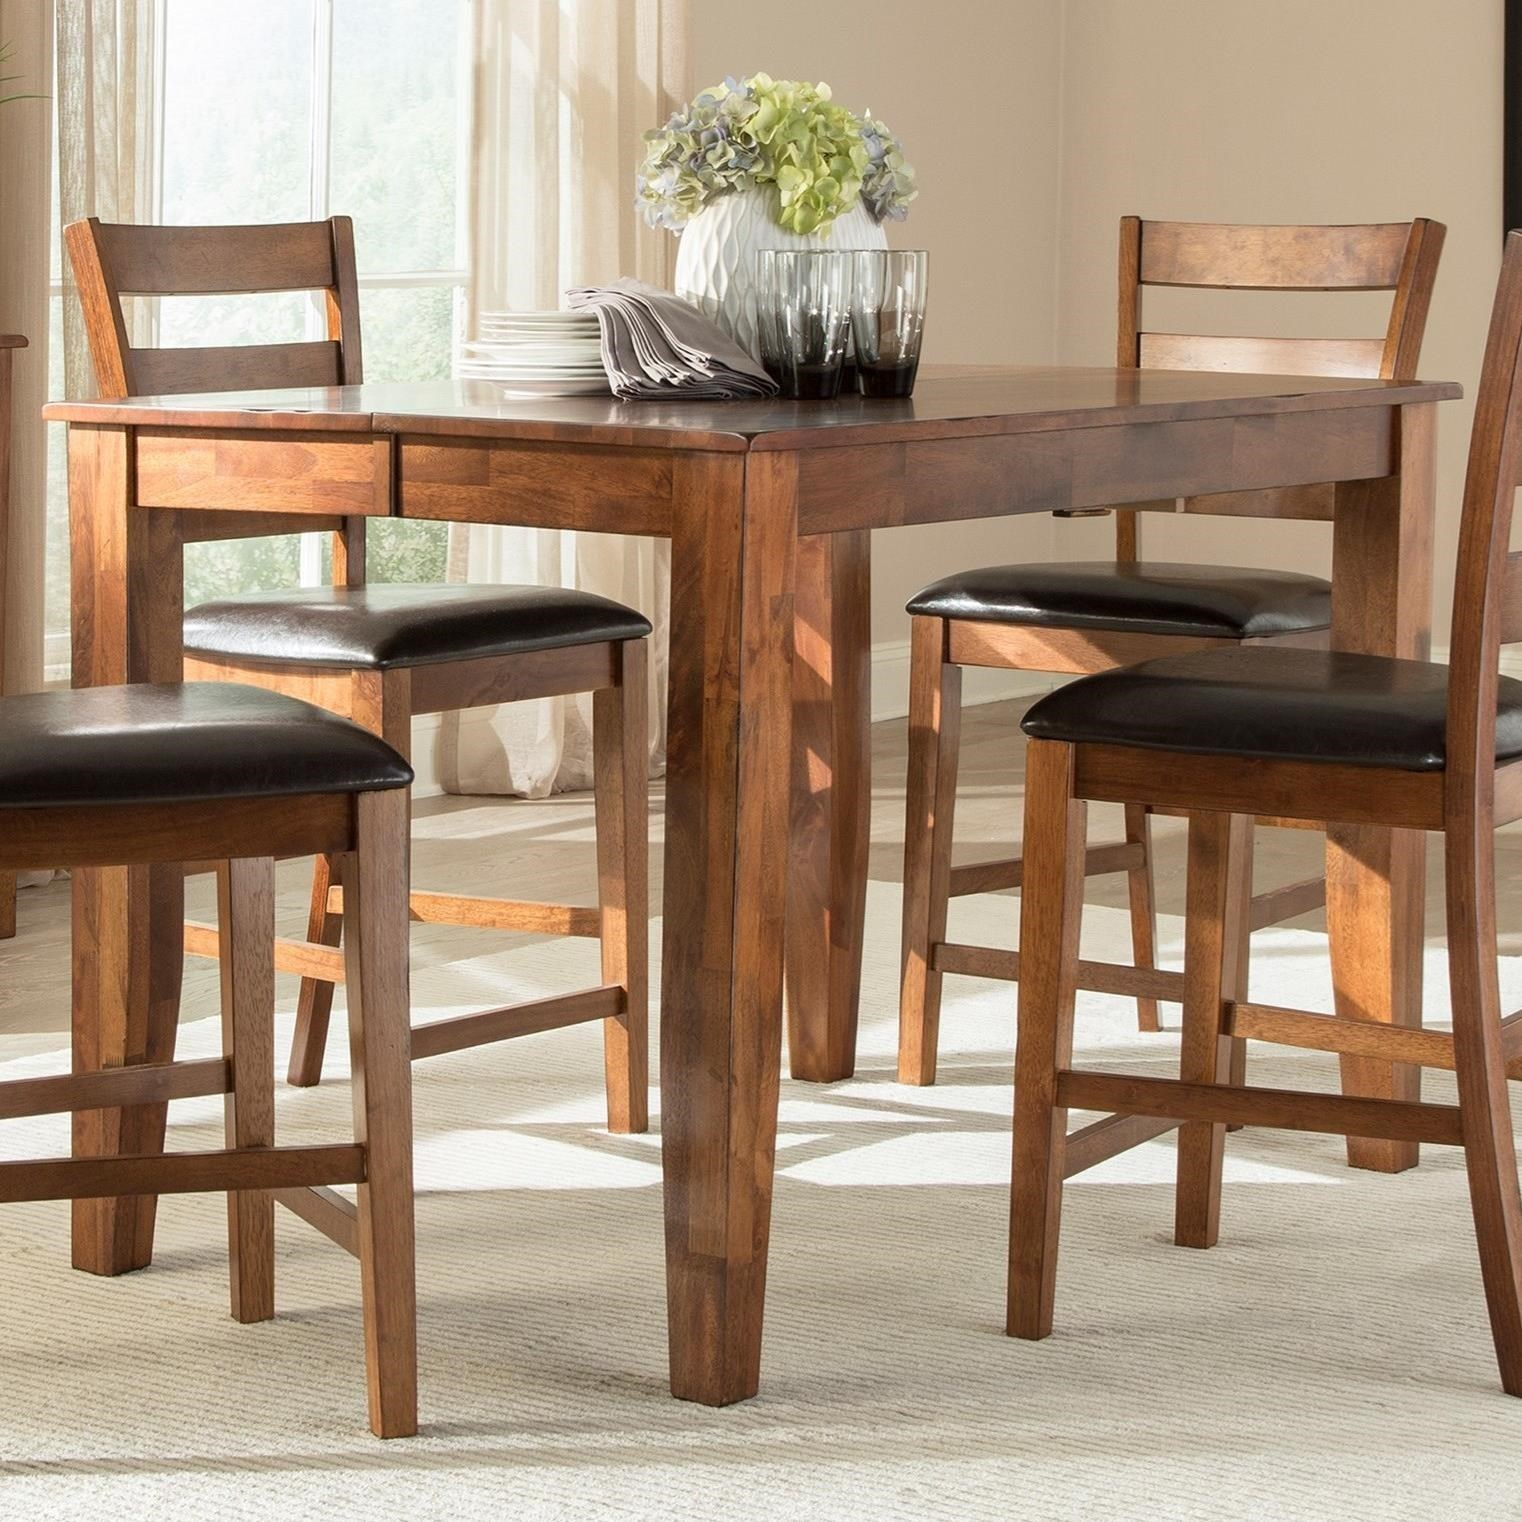 Kona Gathering Table with Butterfly Leaf by VFM Signature at Virginia Furniture Market